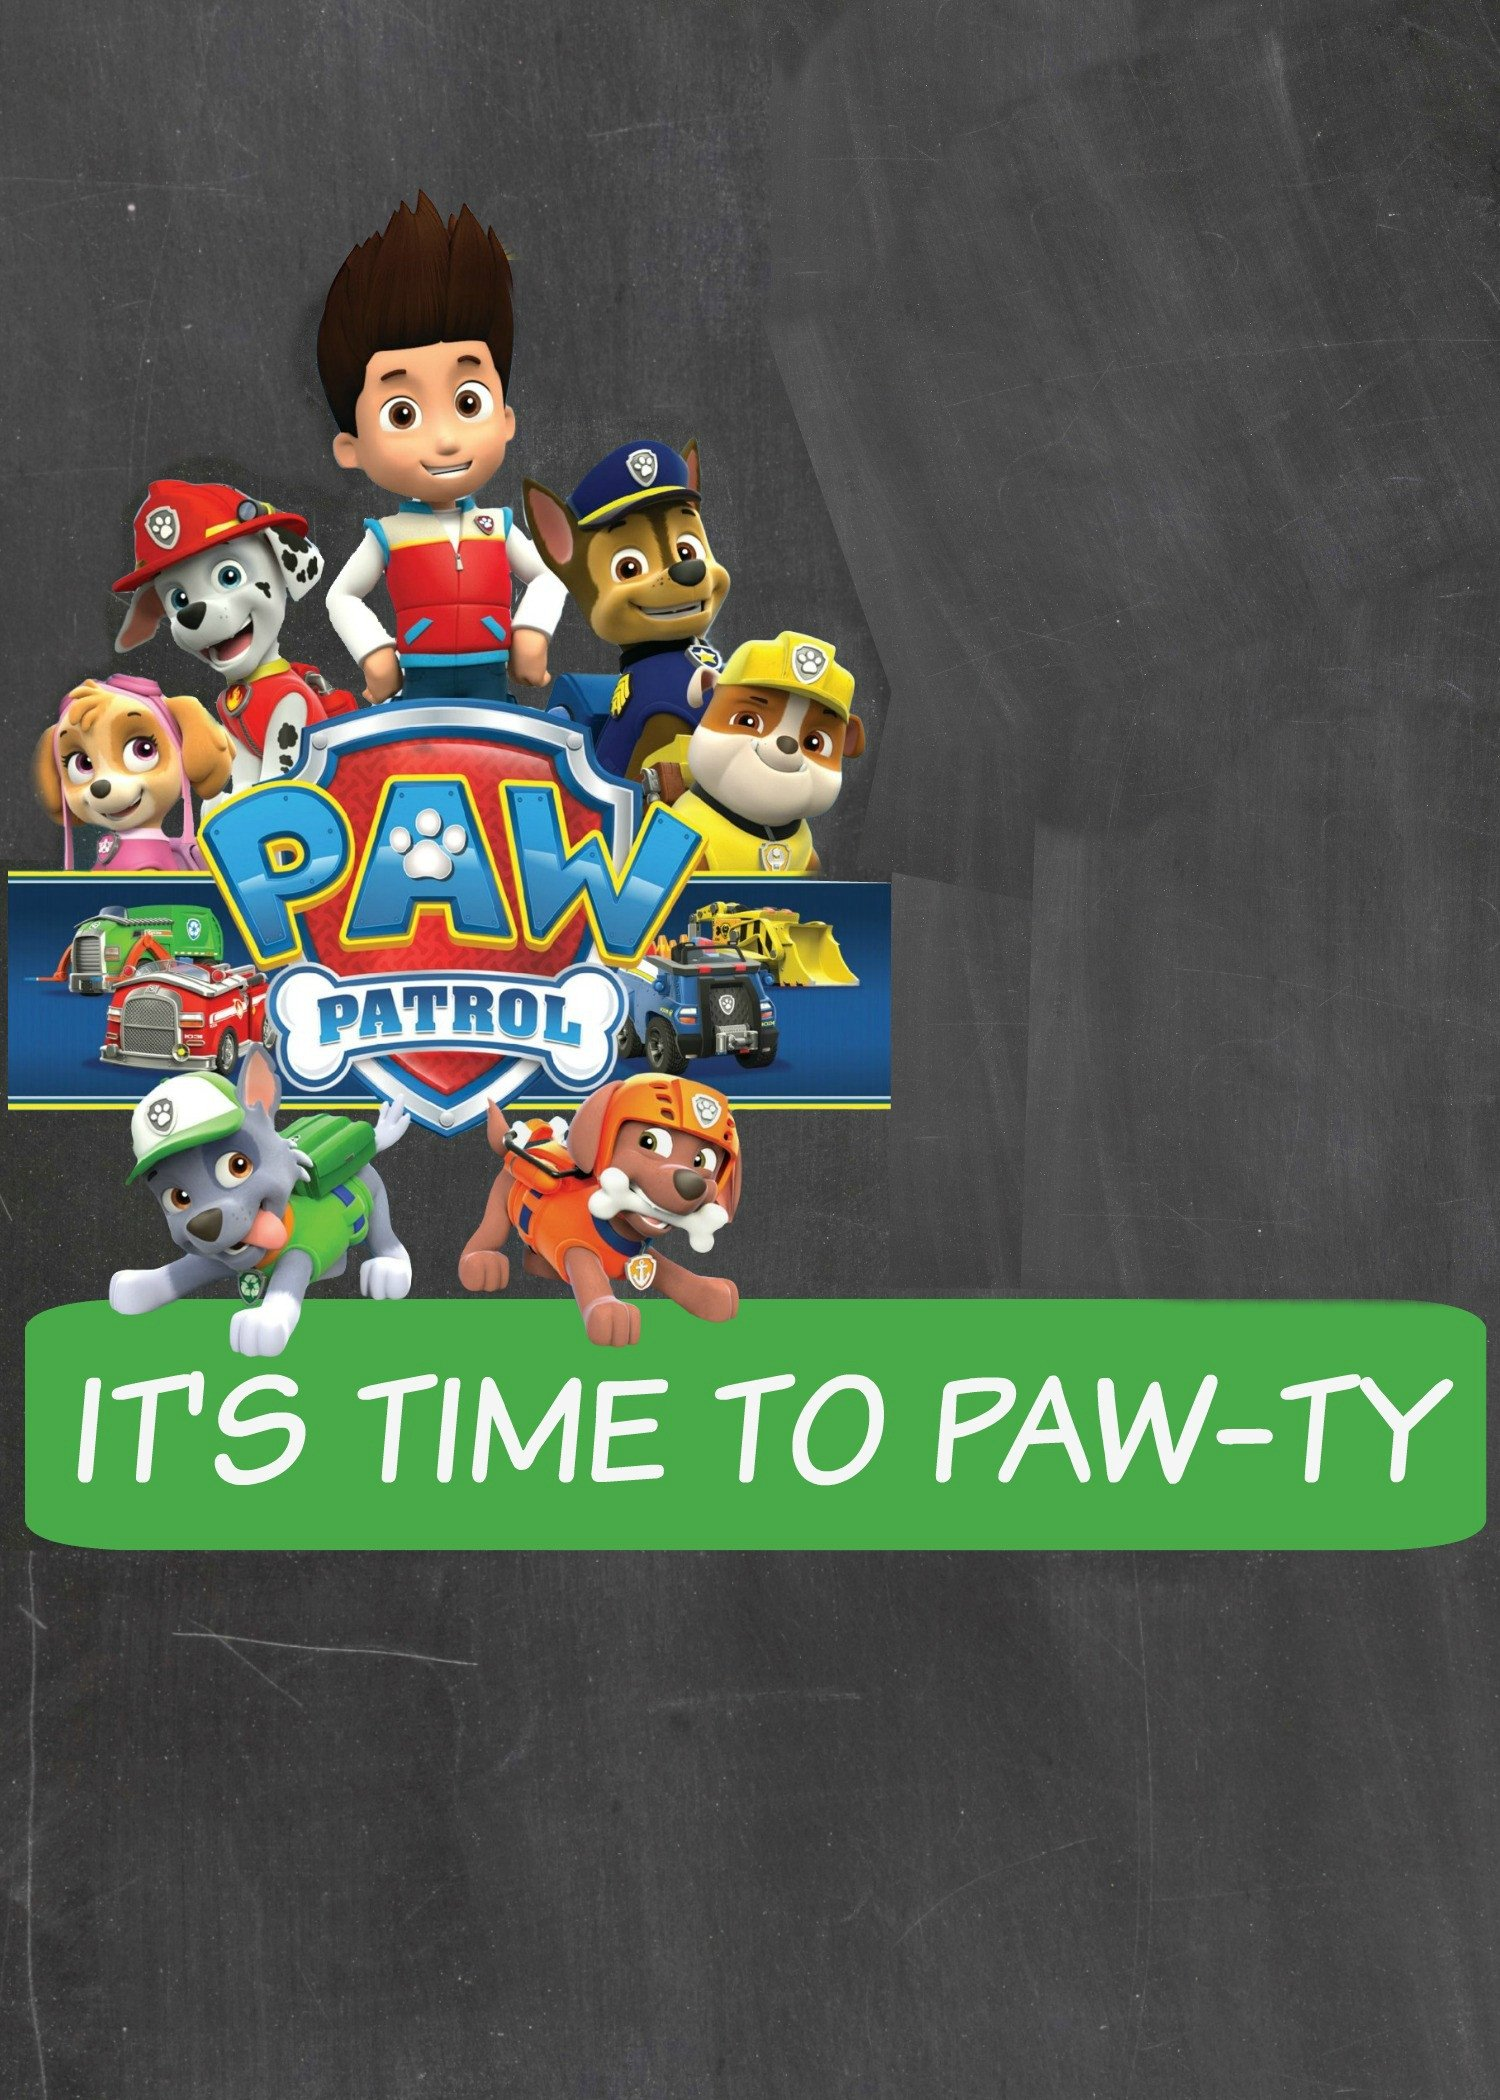 Paw Patrol Invitation Templates How to Make A Paw Patrol Digital Invitation